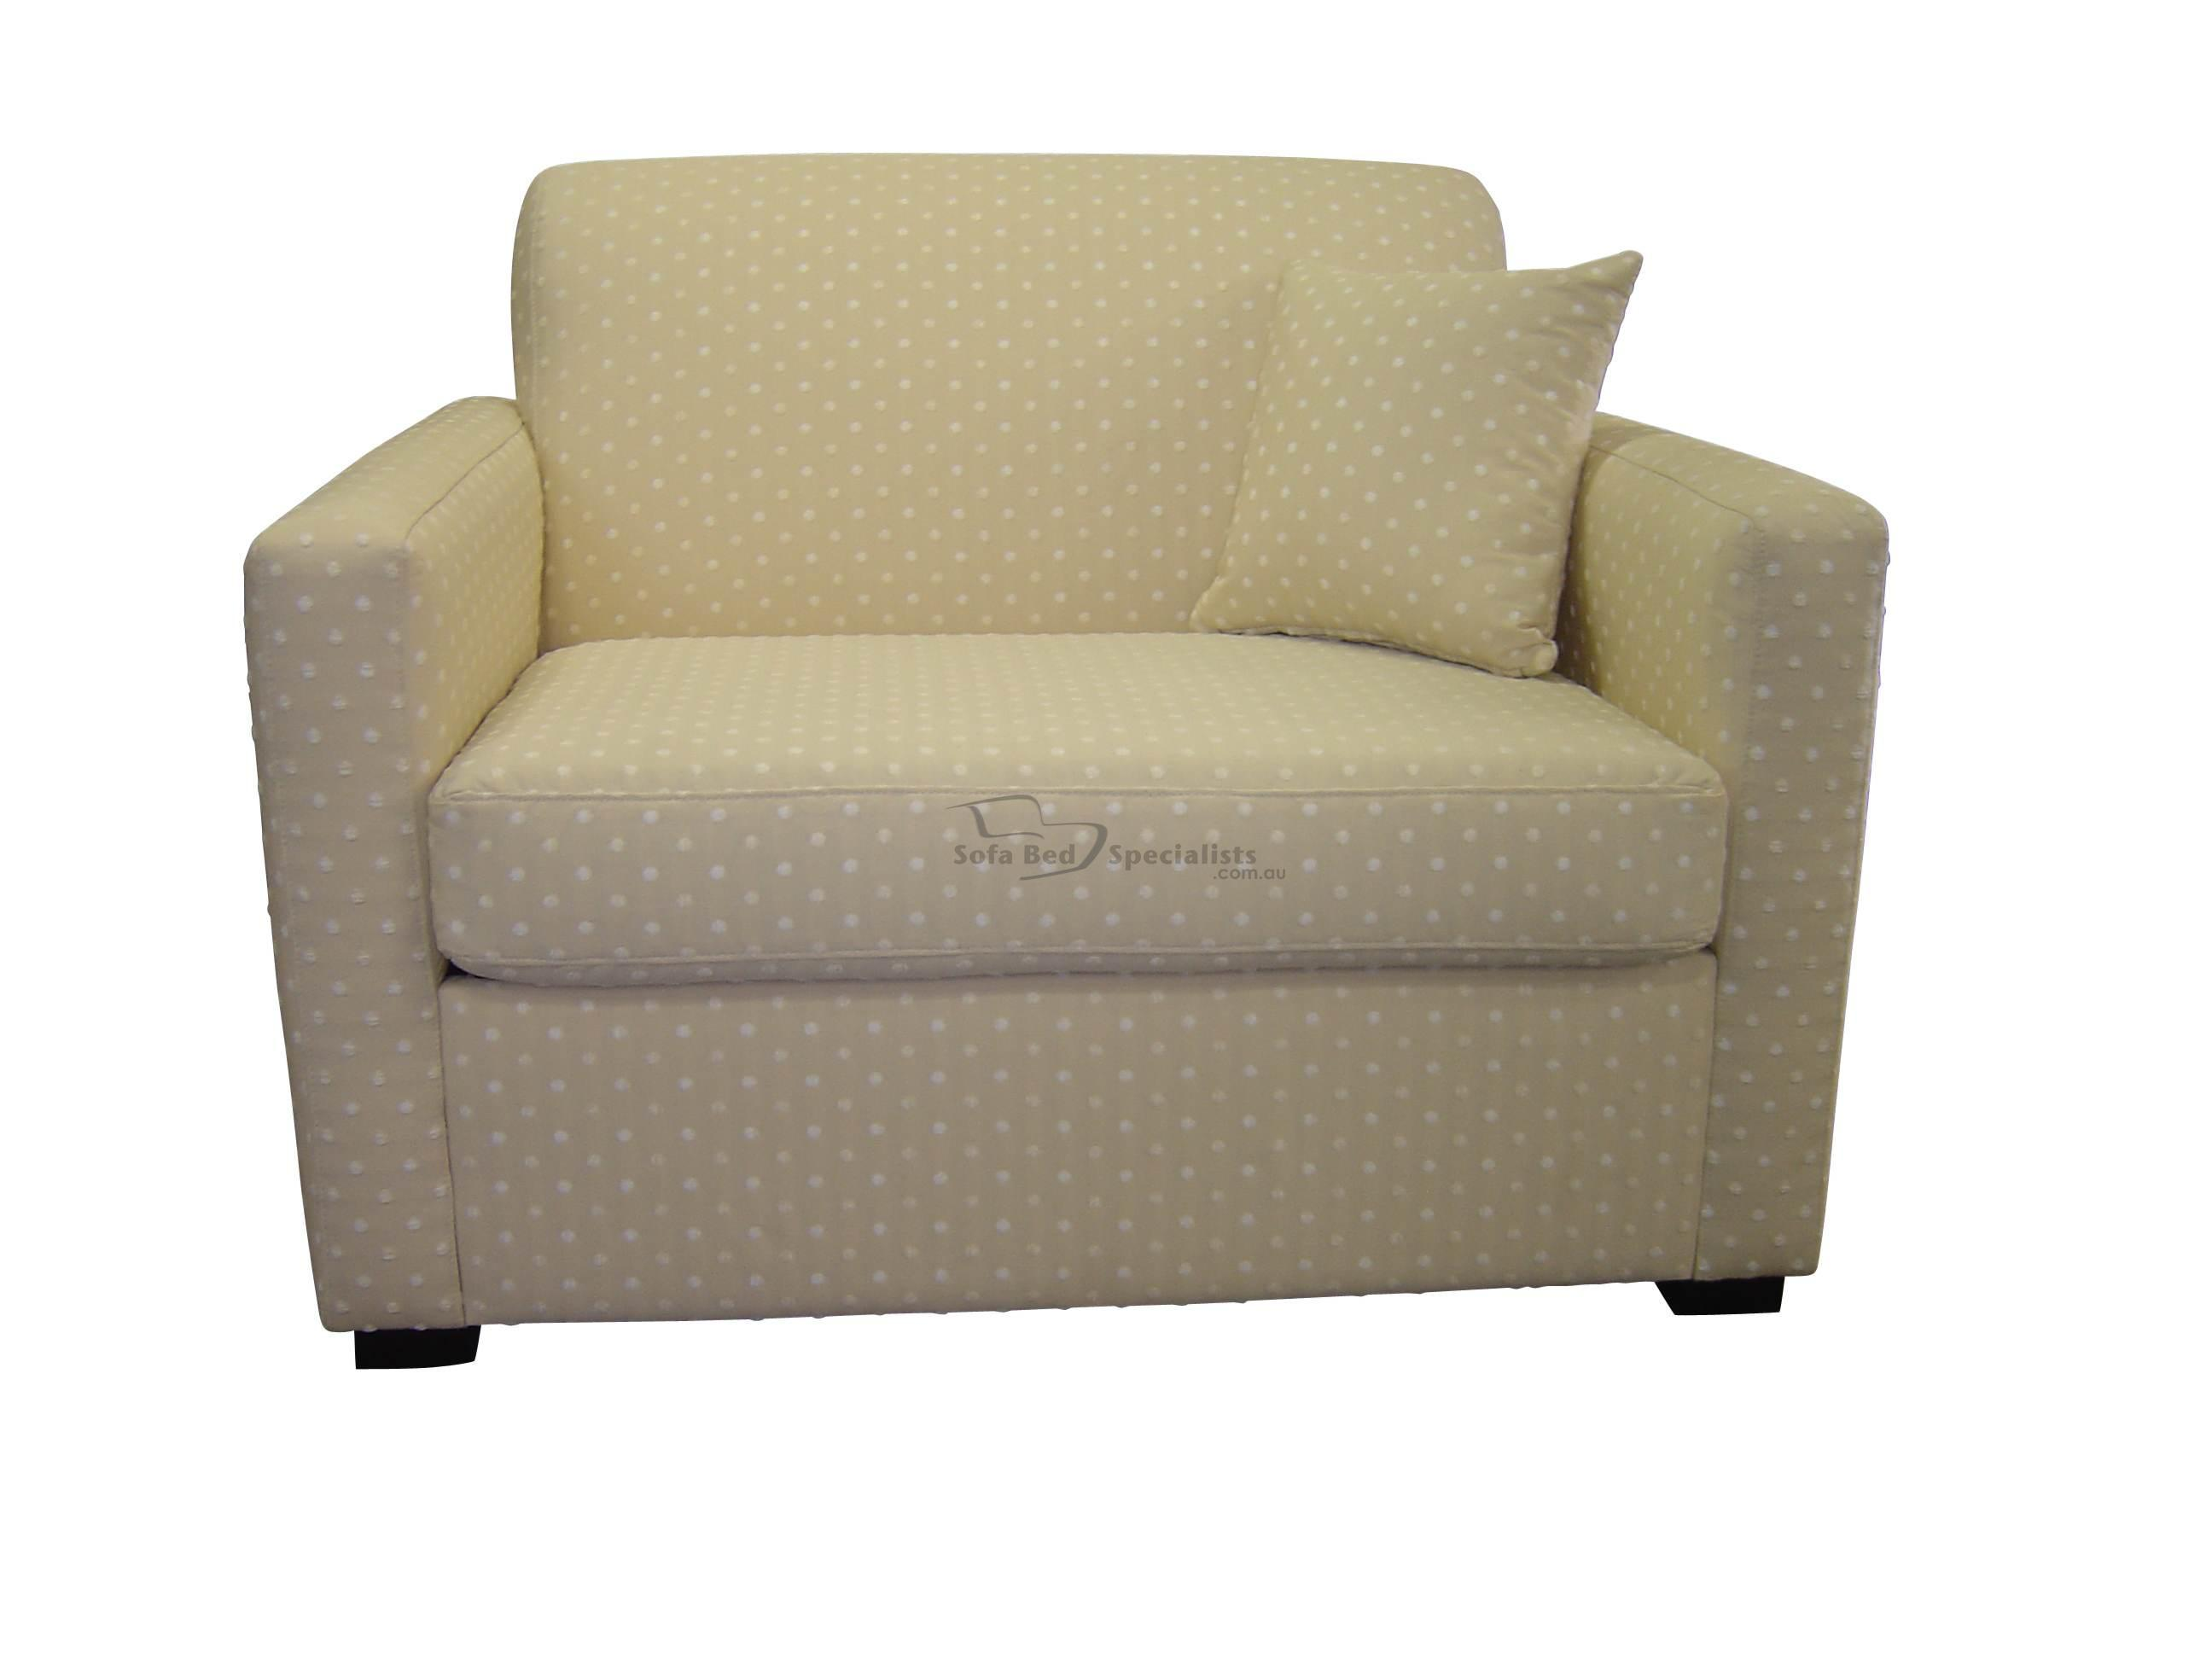 chair sofa beds bed hong kong sofabed bowman specialists